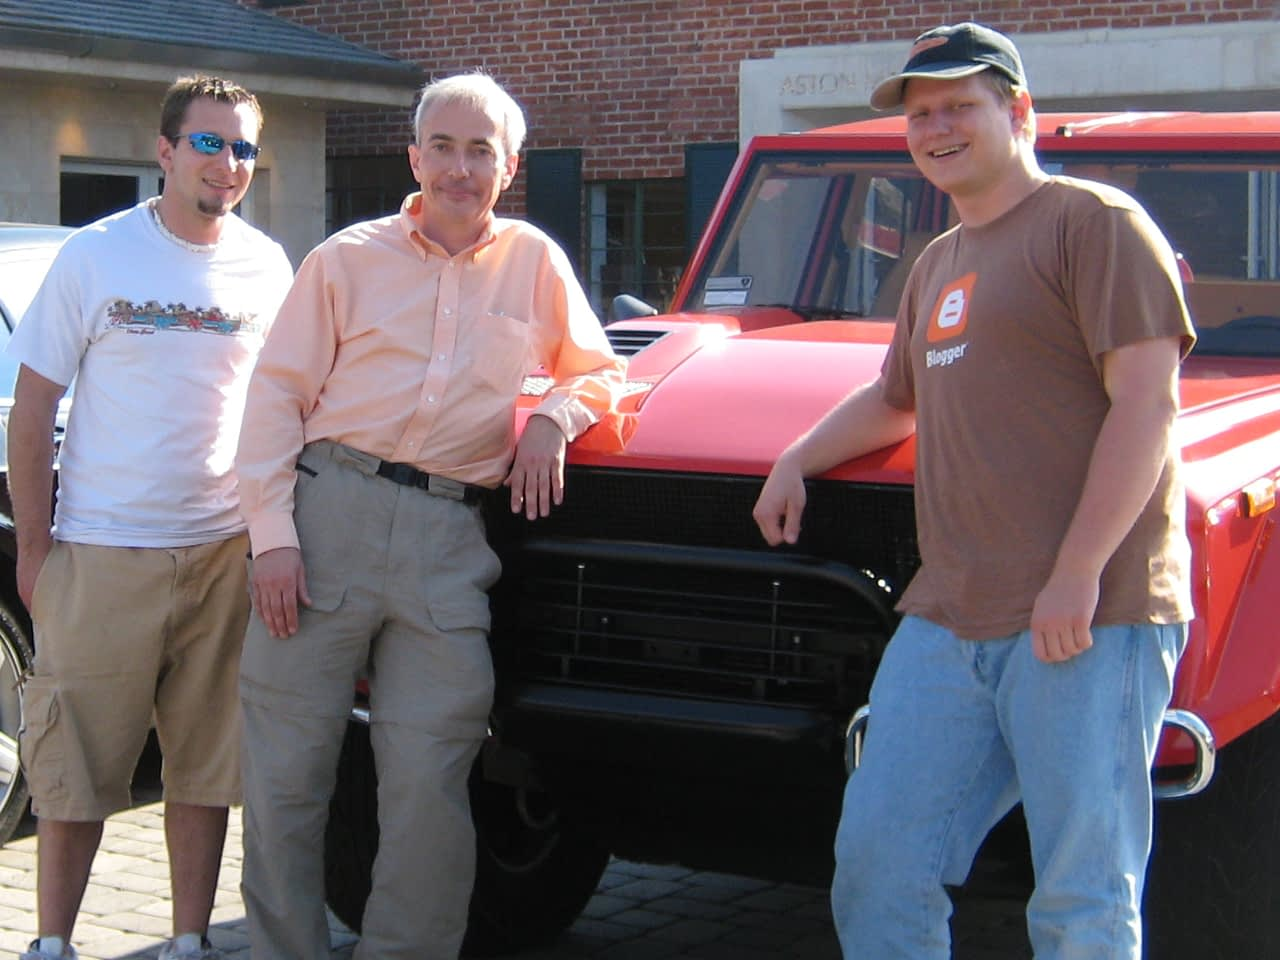 Mike, Dr. Warner, and Patrick in front of Lamborghini LM002